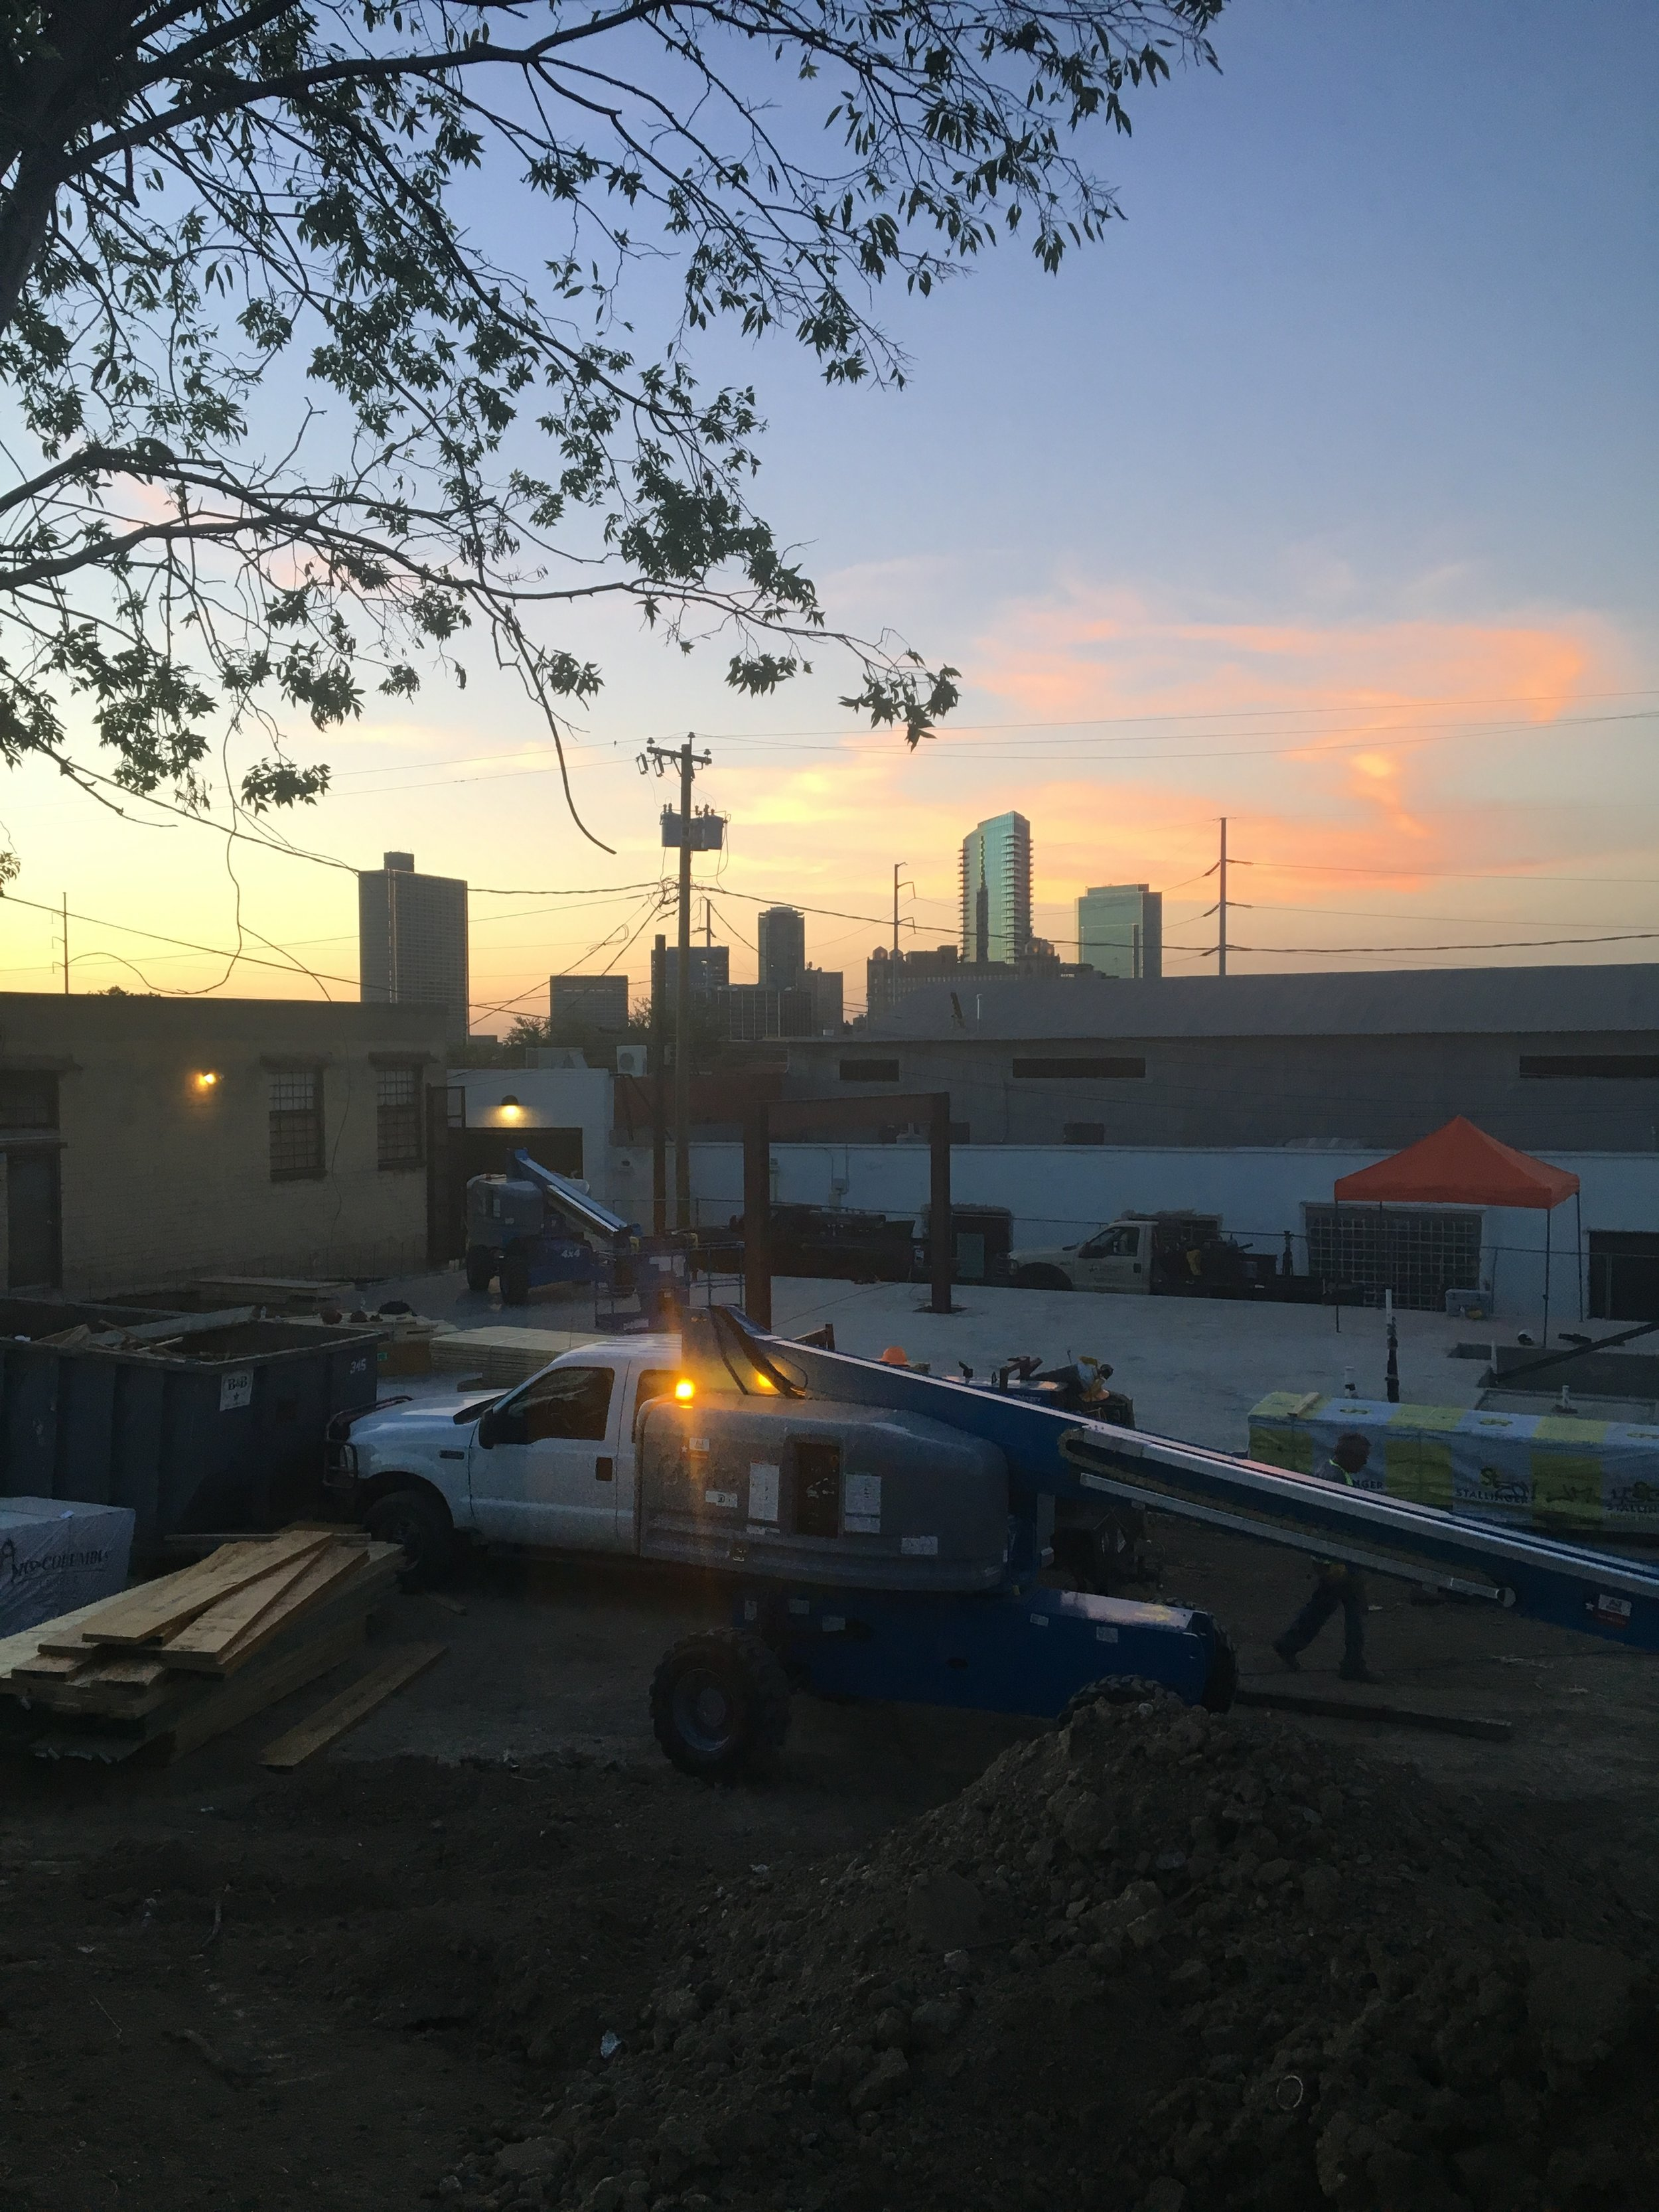 Looking north towards downtown at sunset - we're so excited to our sunset views on the rooftop deck!